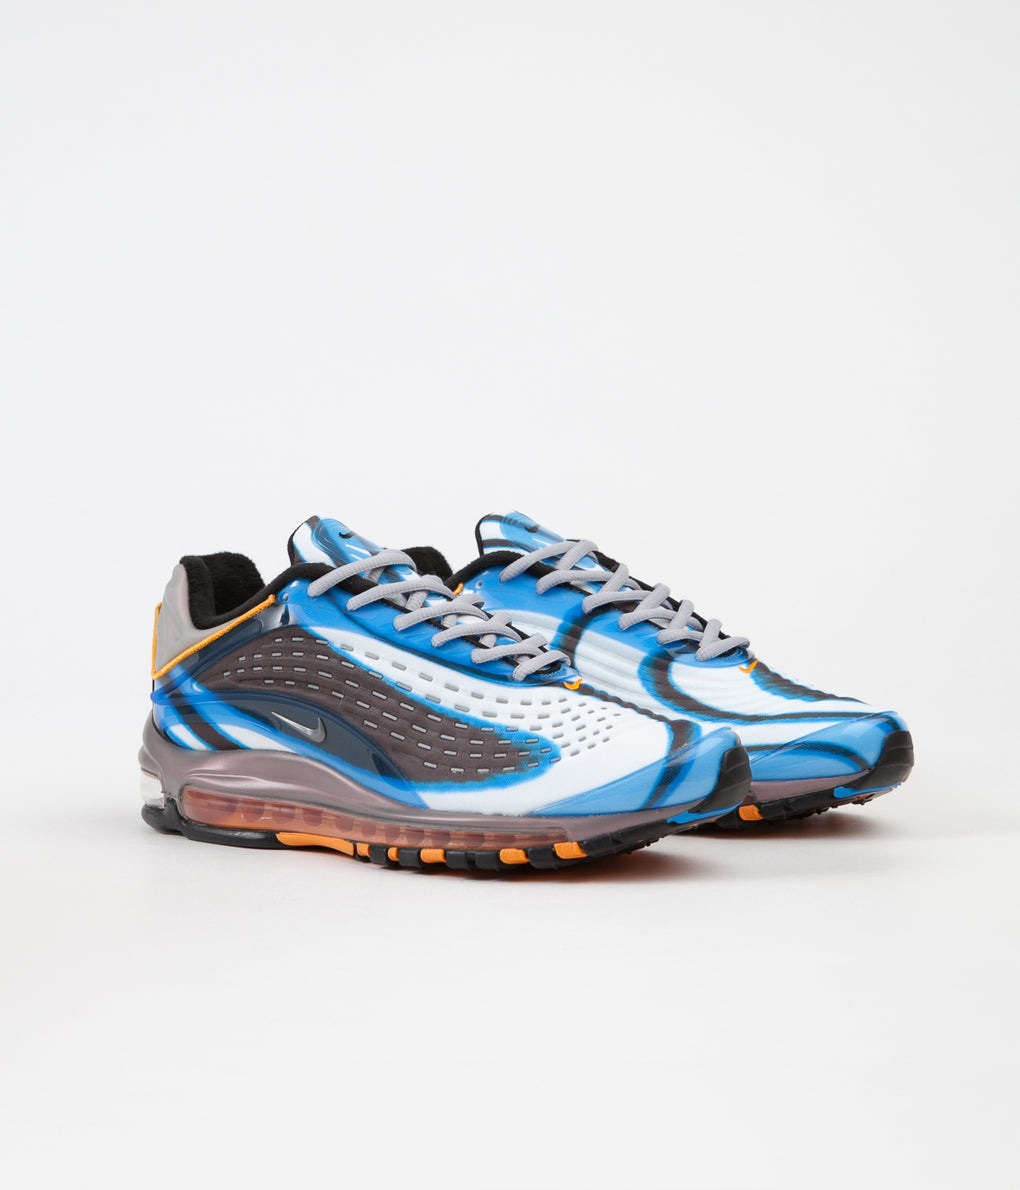 Nike Air Max Deluxe Shoes - Photo Blue / Wolf Grey - Orange Peel - Black